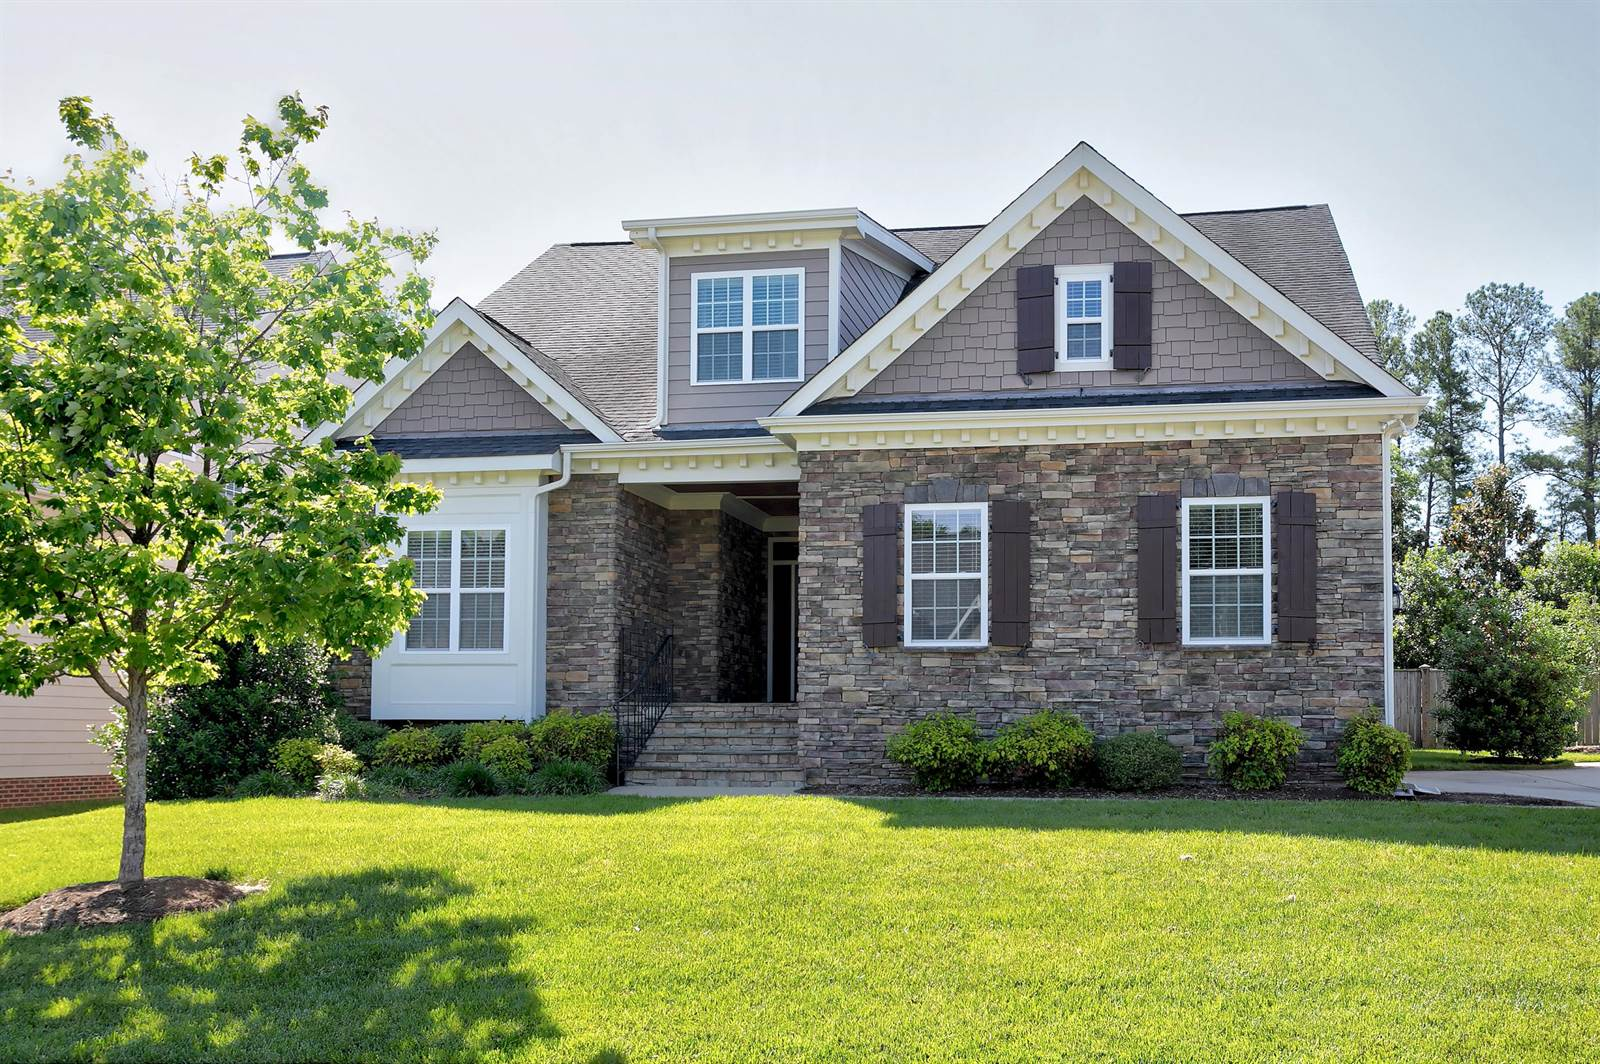 109 Tonks Trail, Holly Springs, NC 27540